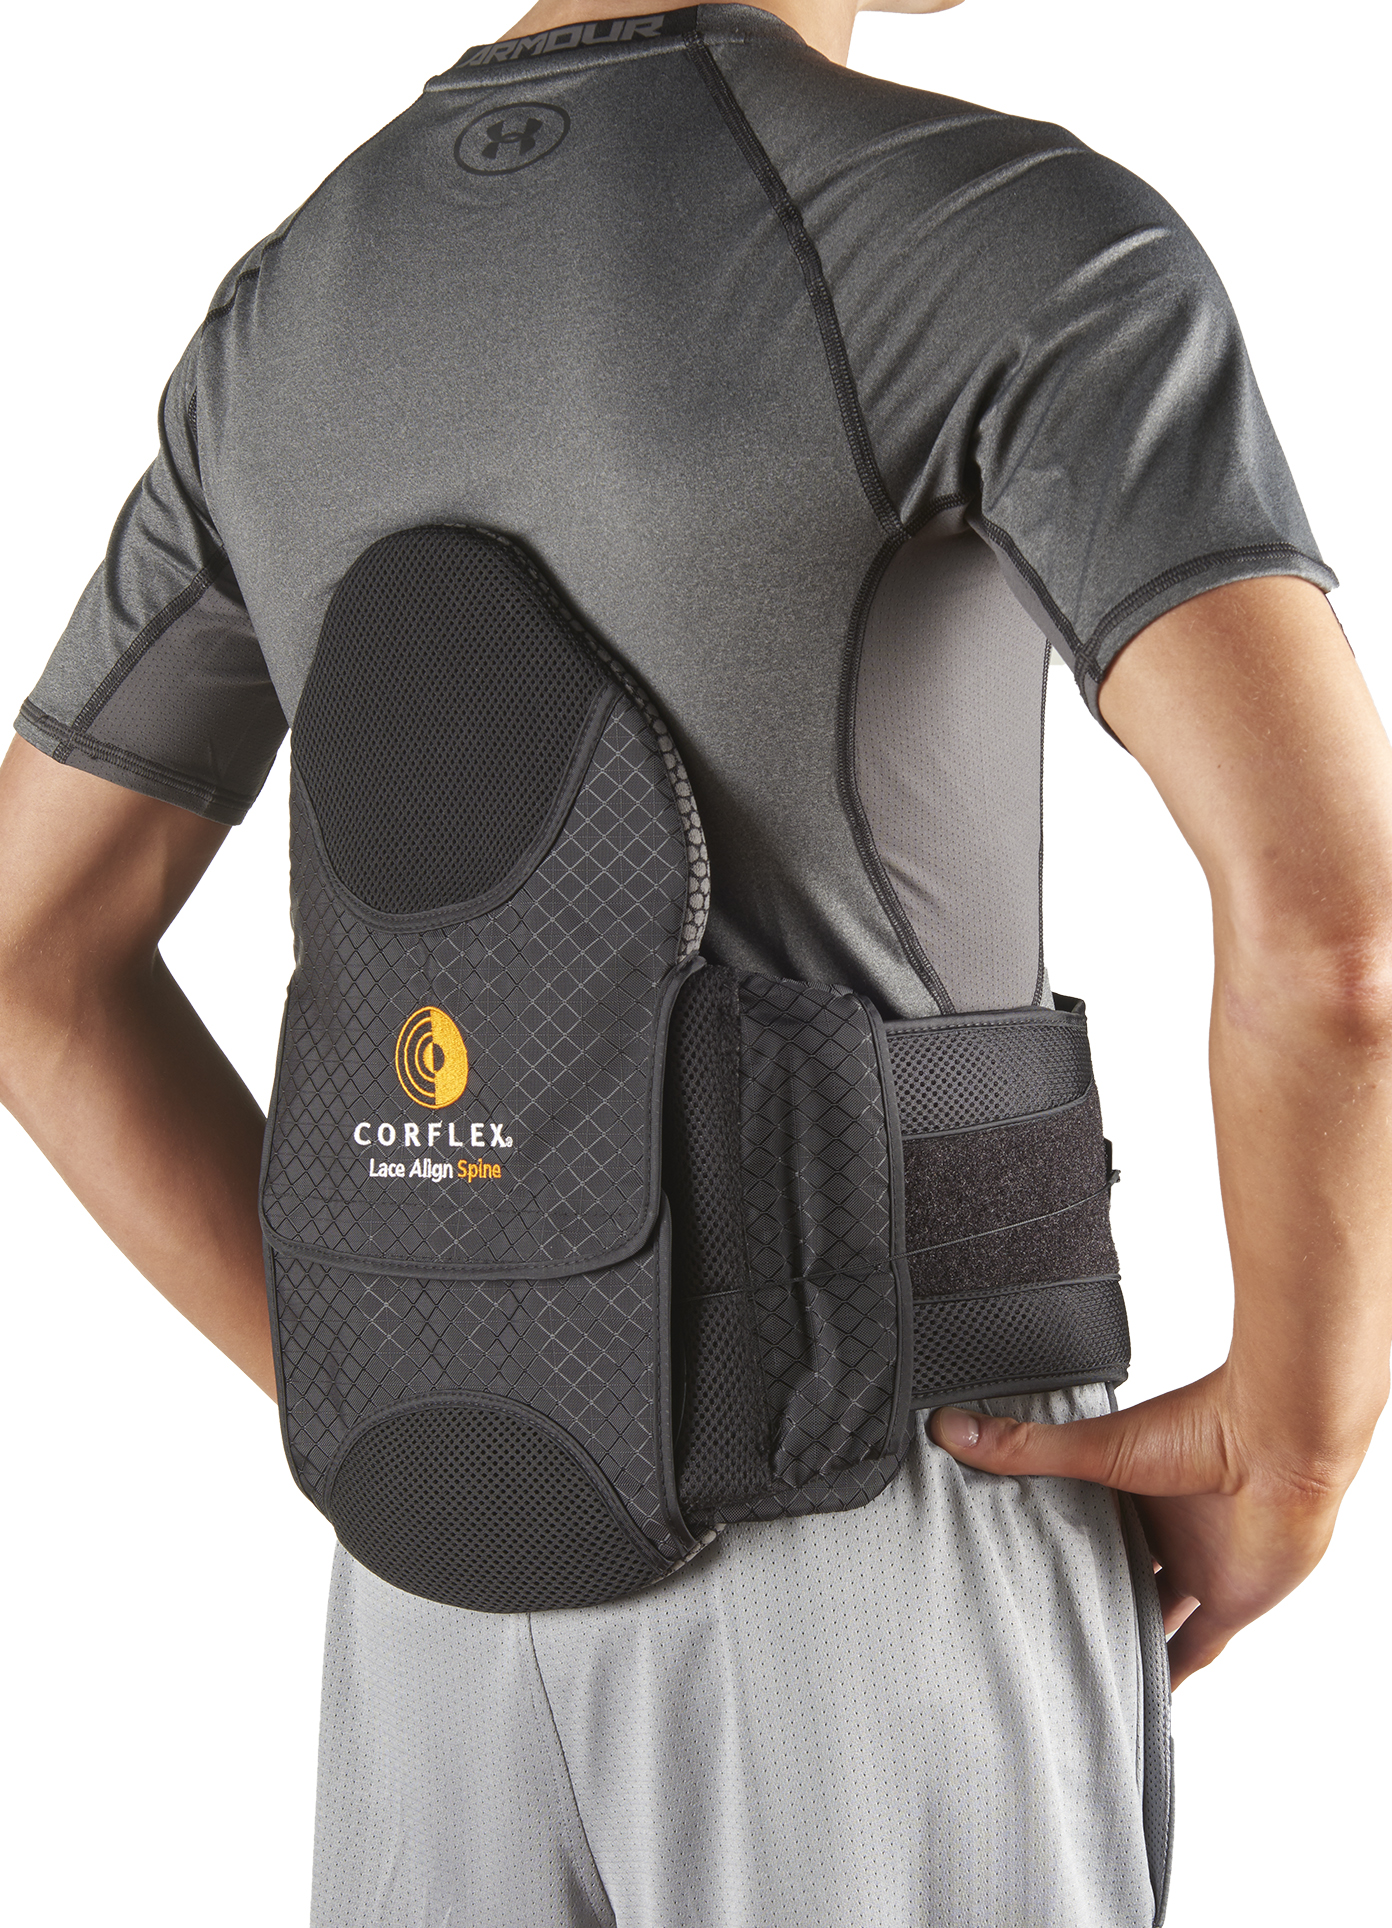 Lace Align Lumbosacral Orthosis (LSO)